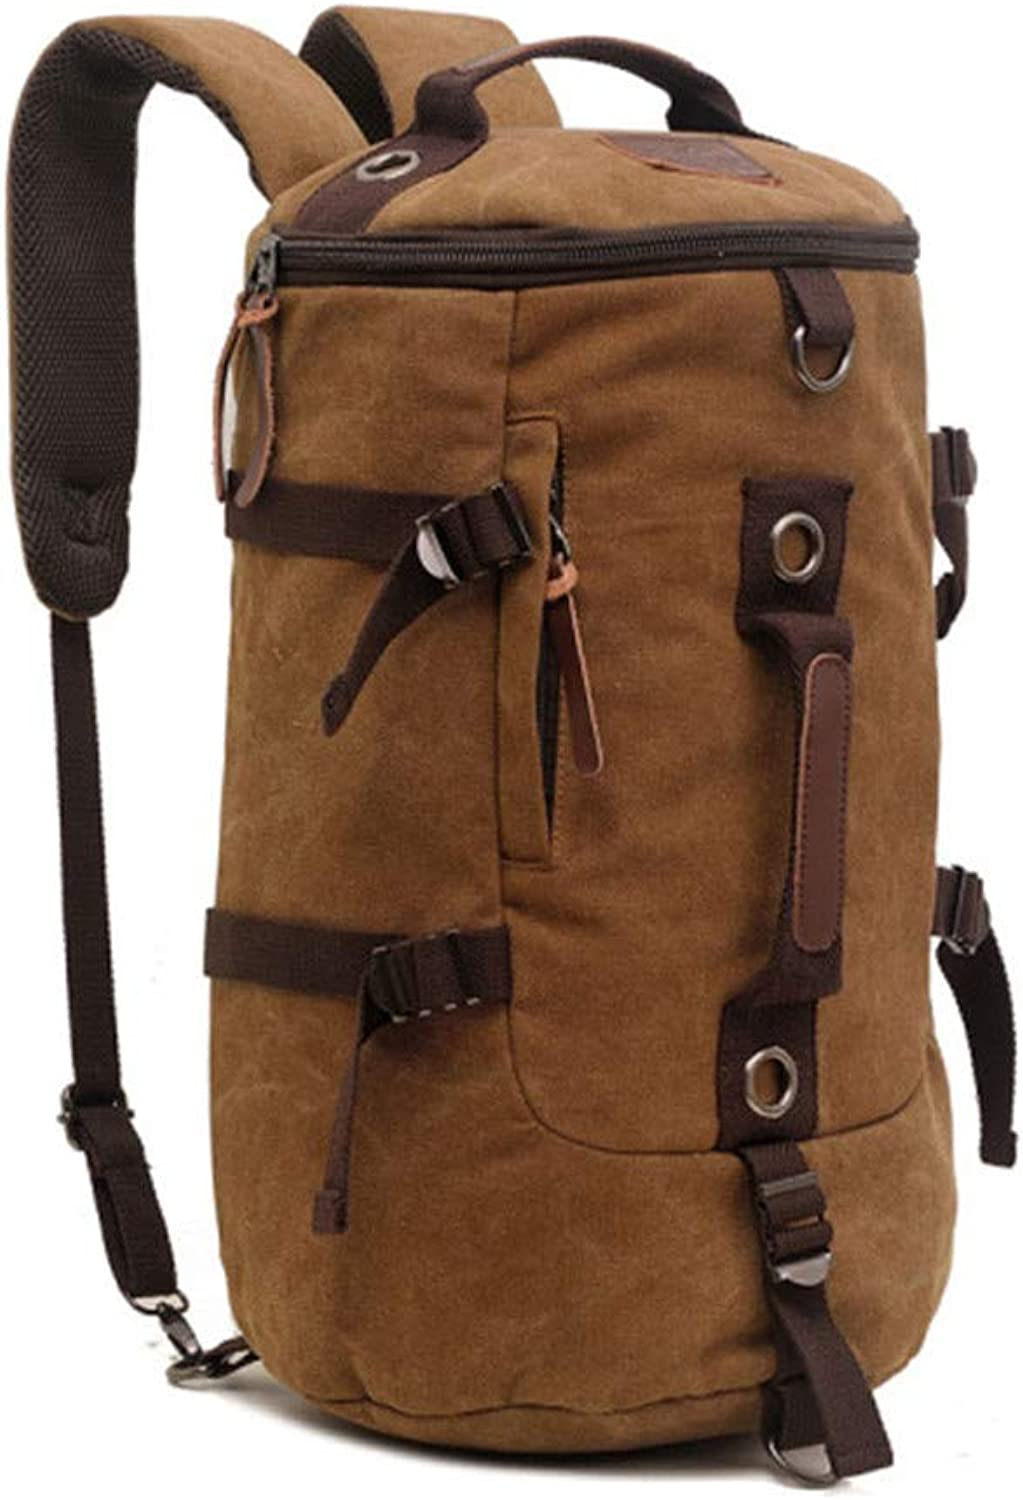 Canvas Backpack One Shoulder Diagonal Casual Large Capacity MultiFunction Male Bag Travel Mountaineering Bag Unisex Casual Rucksack Satchel Bookbag (color   Coffee color)